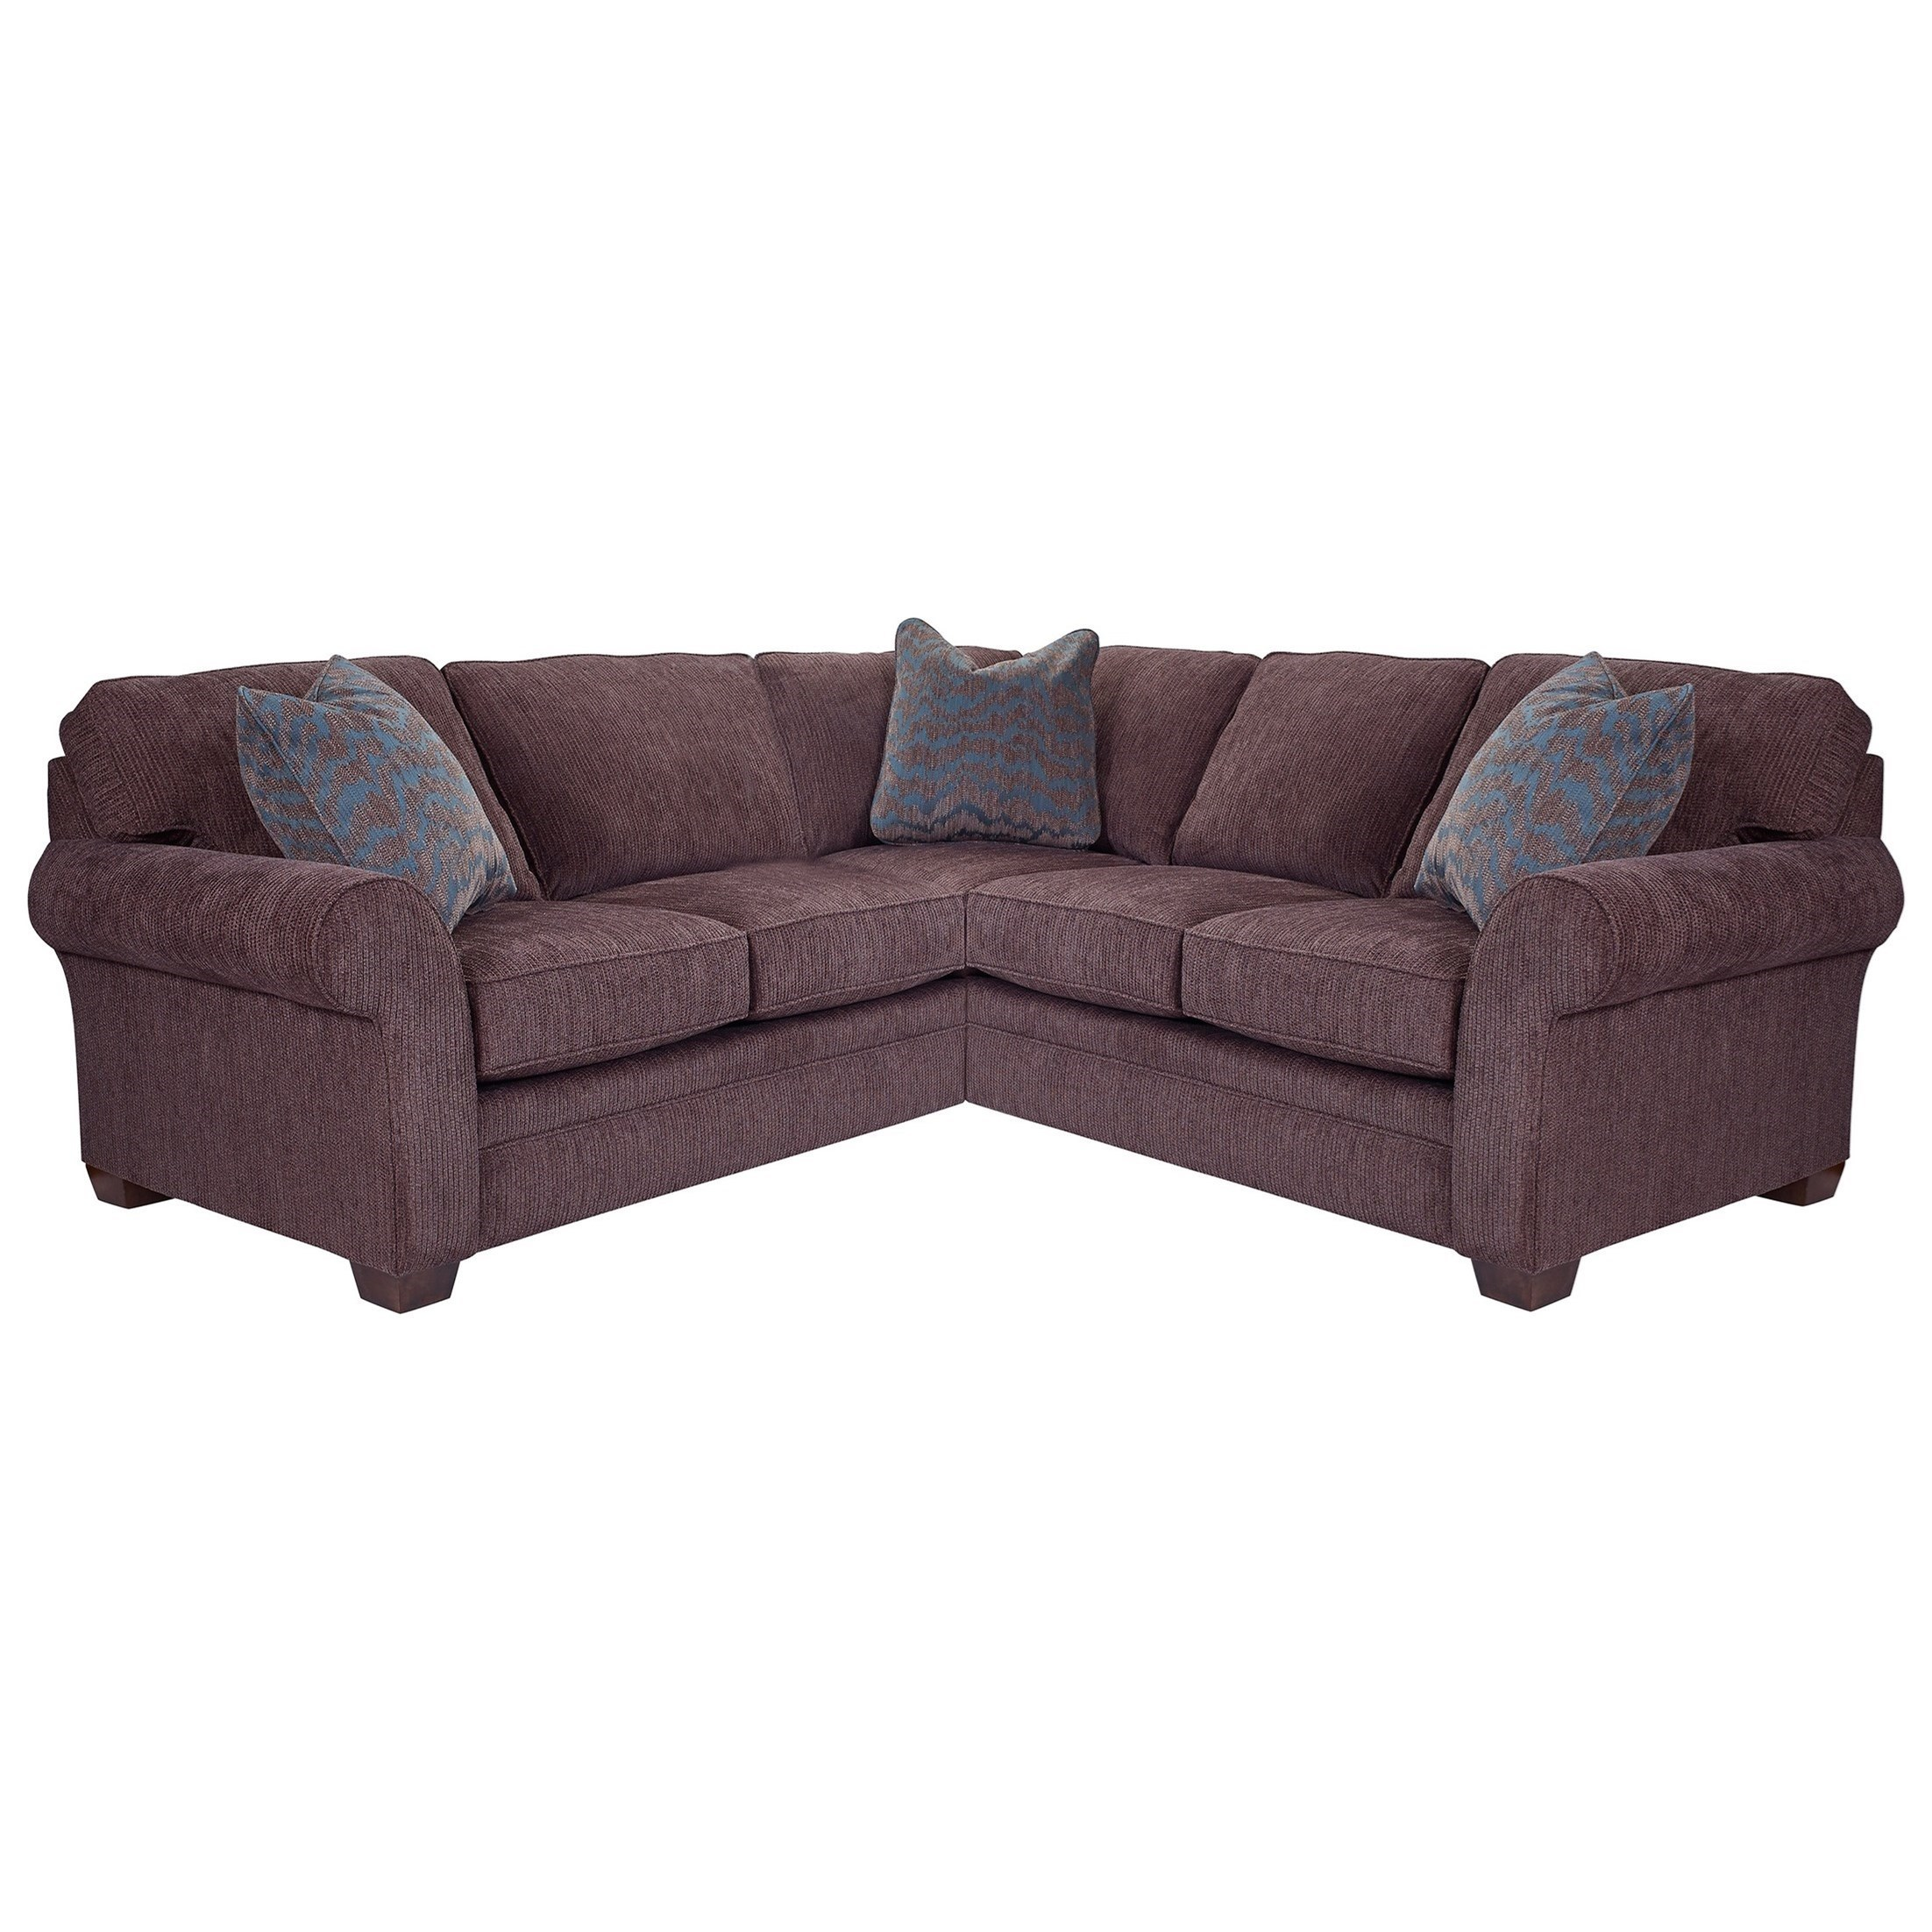 Broyhill Furniture ZacharySectional Sofa ...